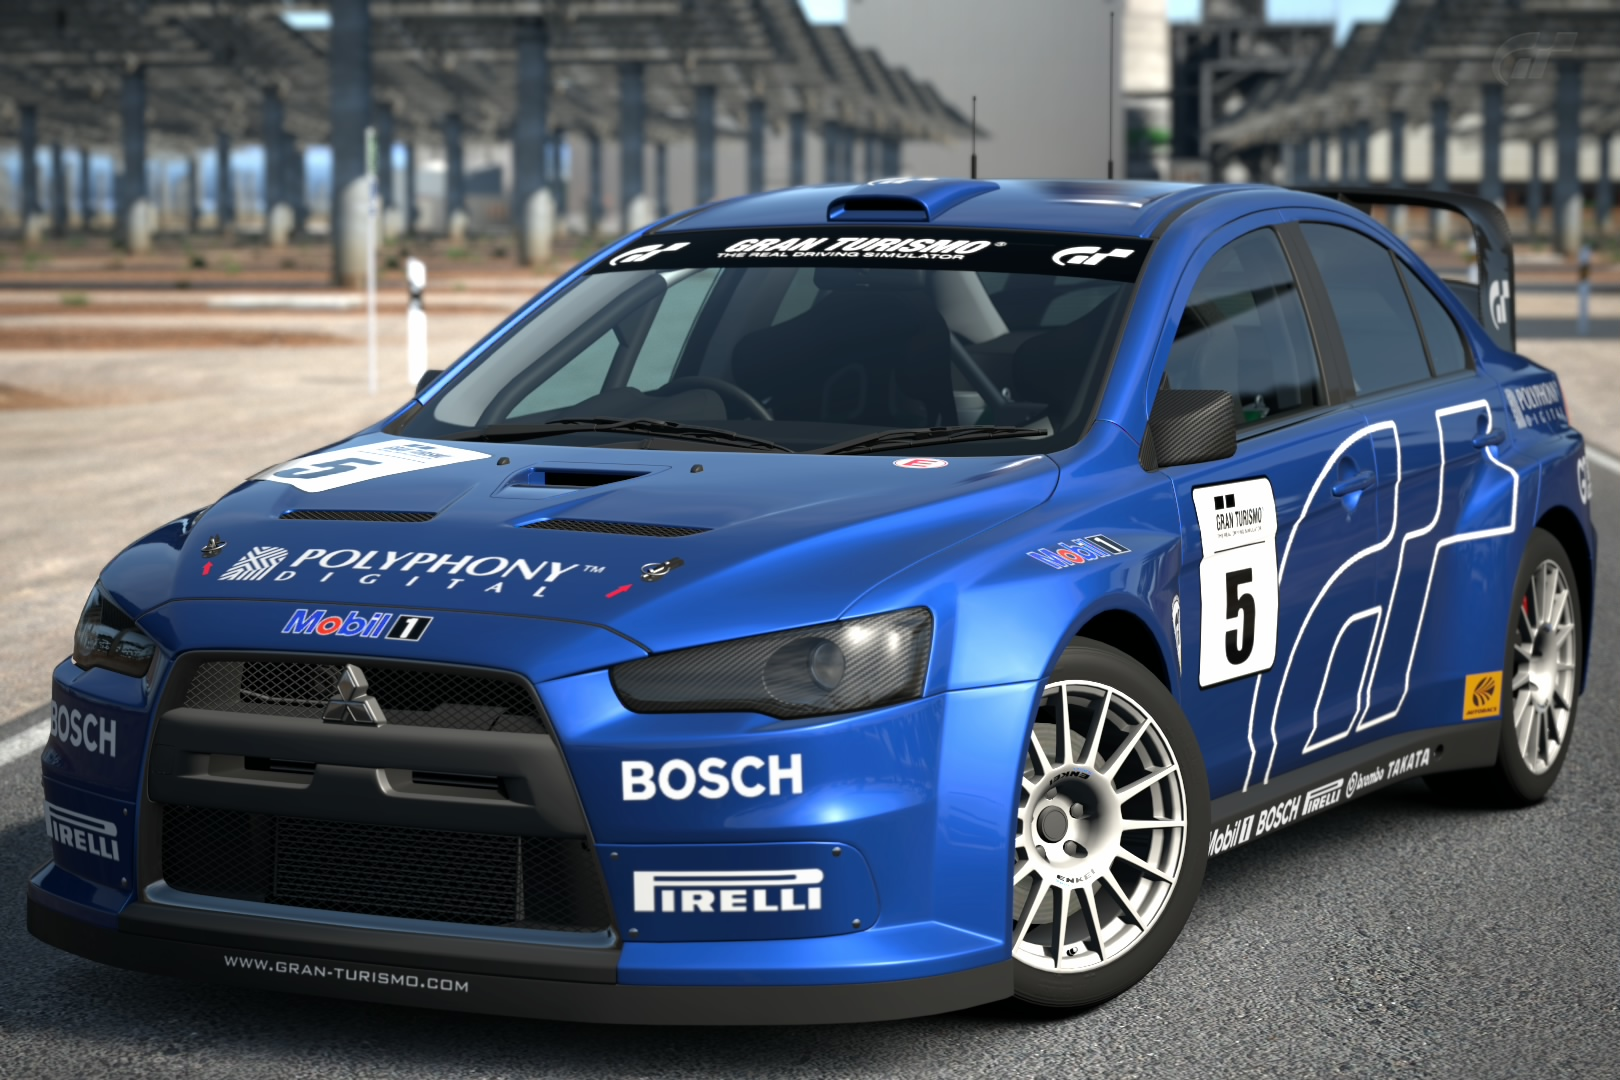 Mitsubishi Evolution X Rally Cars For Sale: Mitsubishi Lancer Evolution X Rally Car